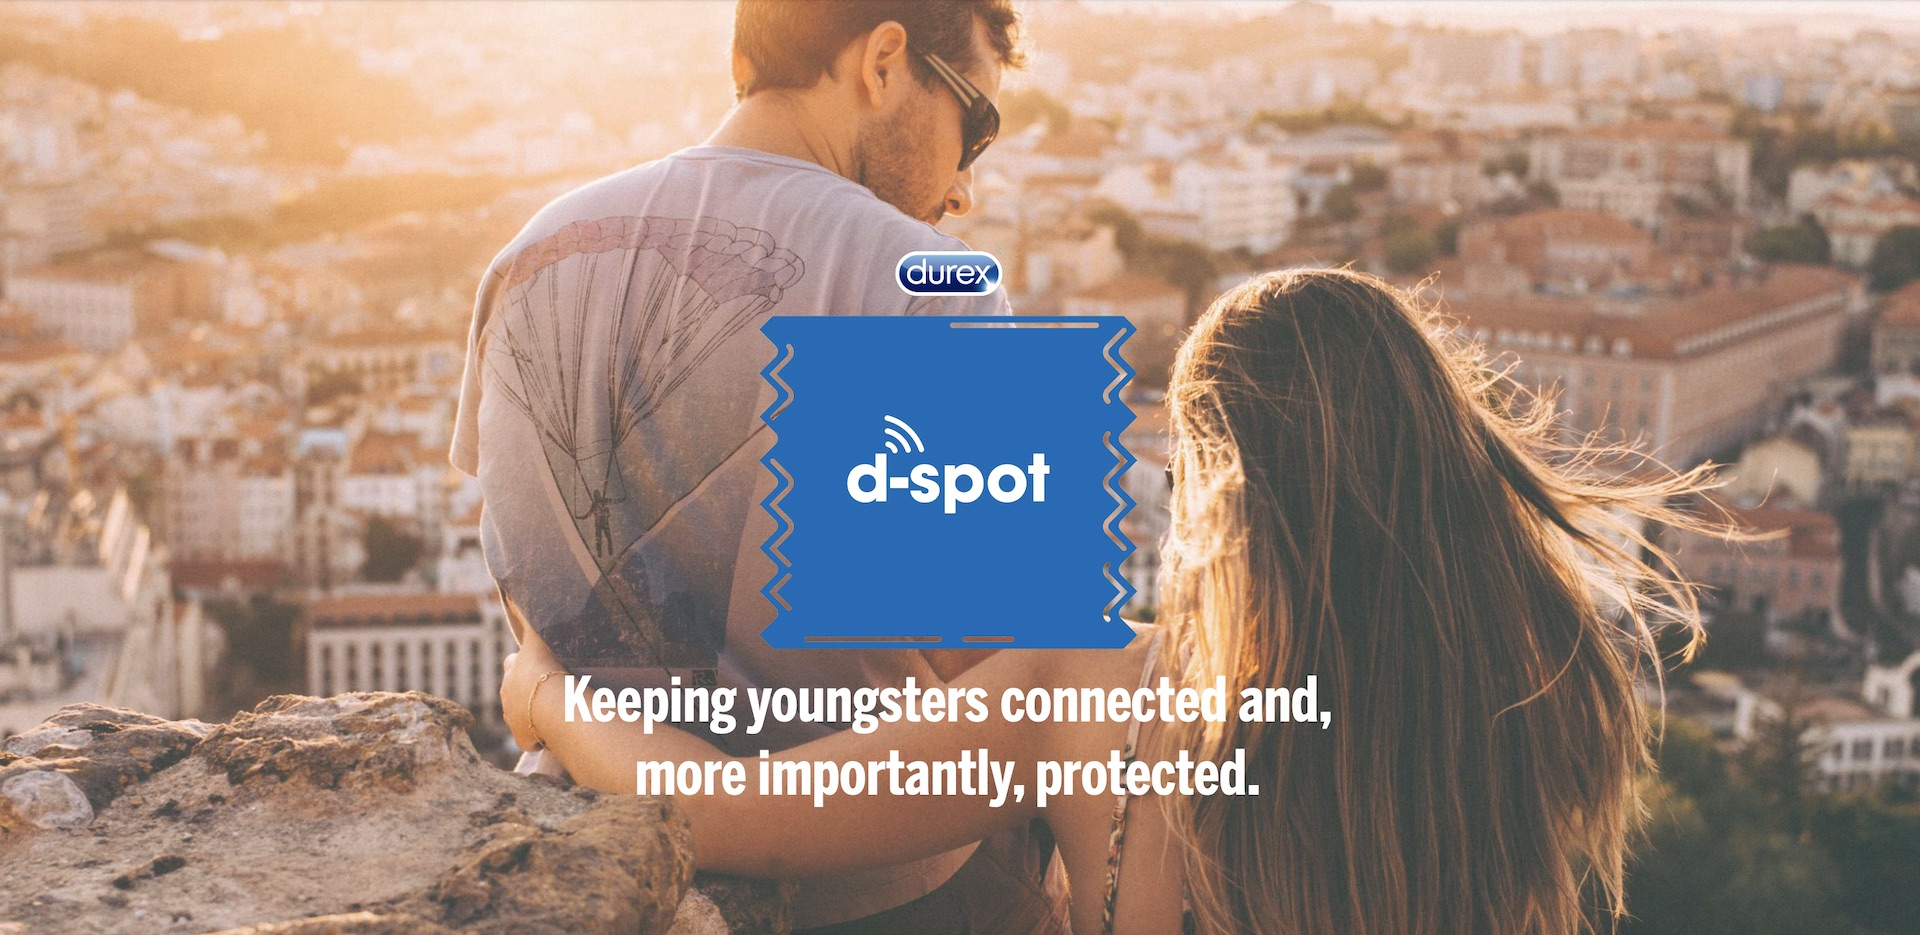 MUSE Creative Awards | Durex d-spot | Best Student Submissions